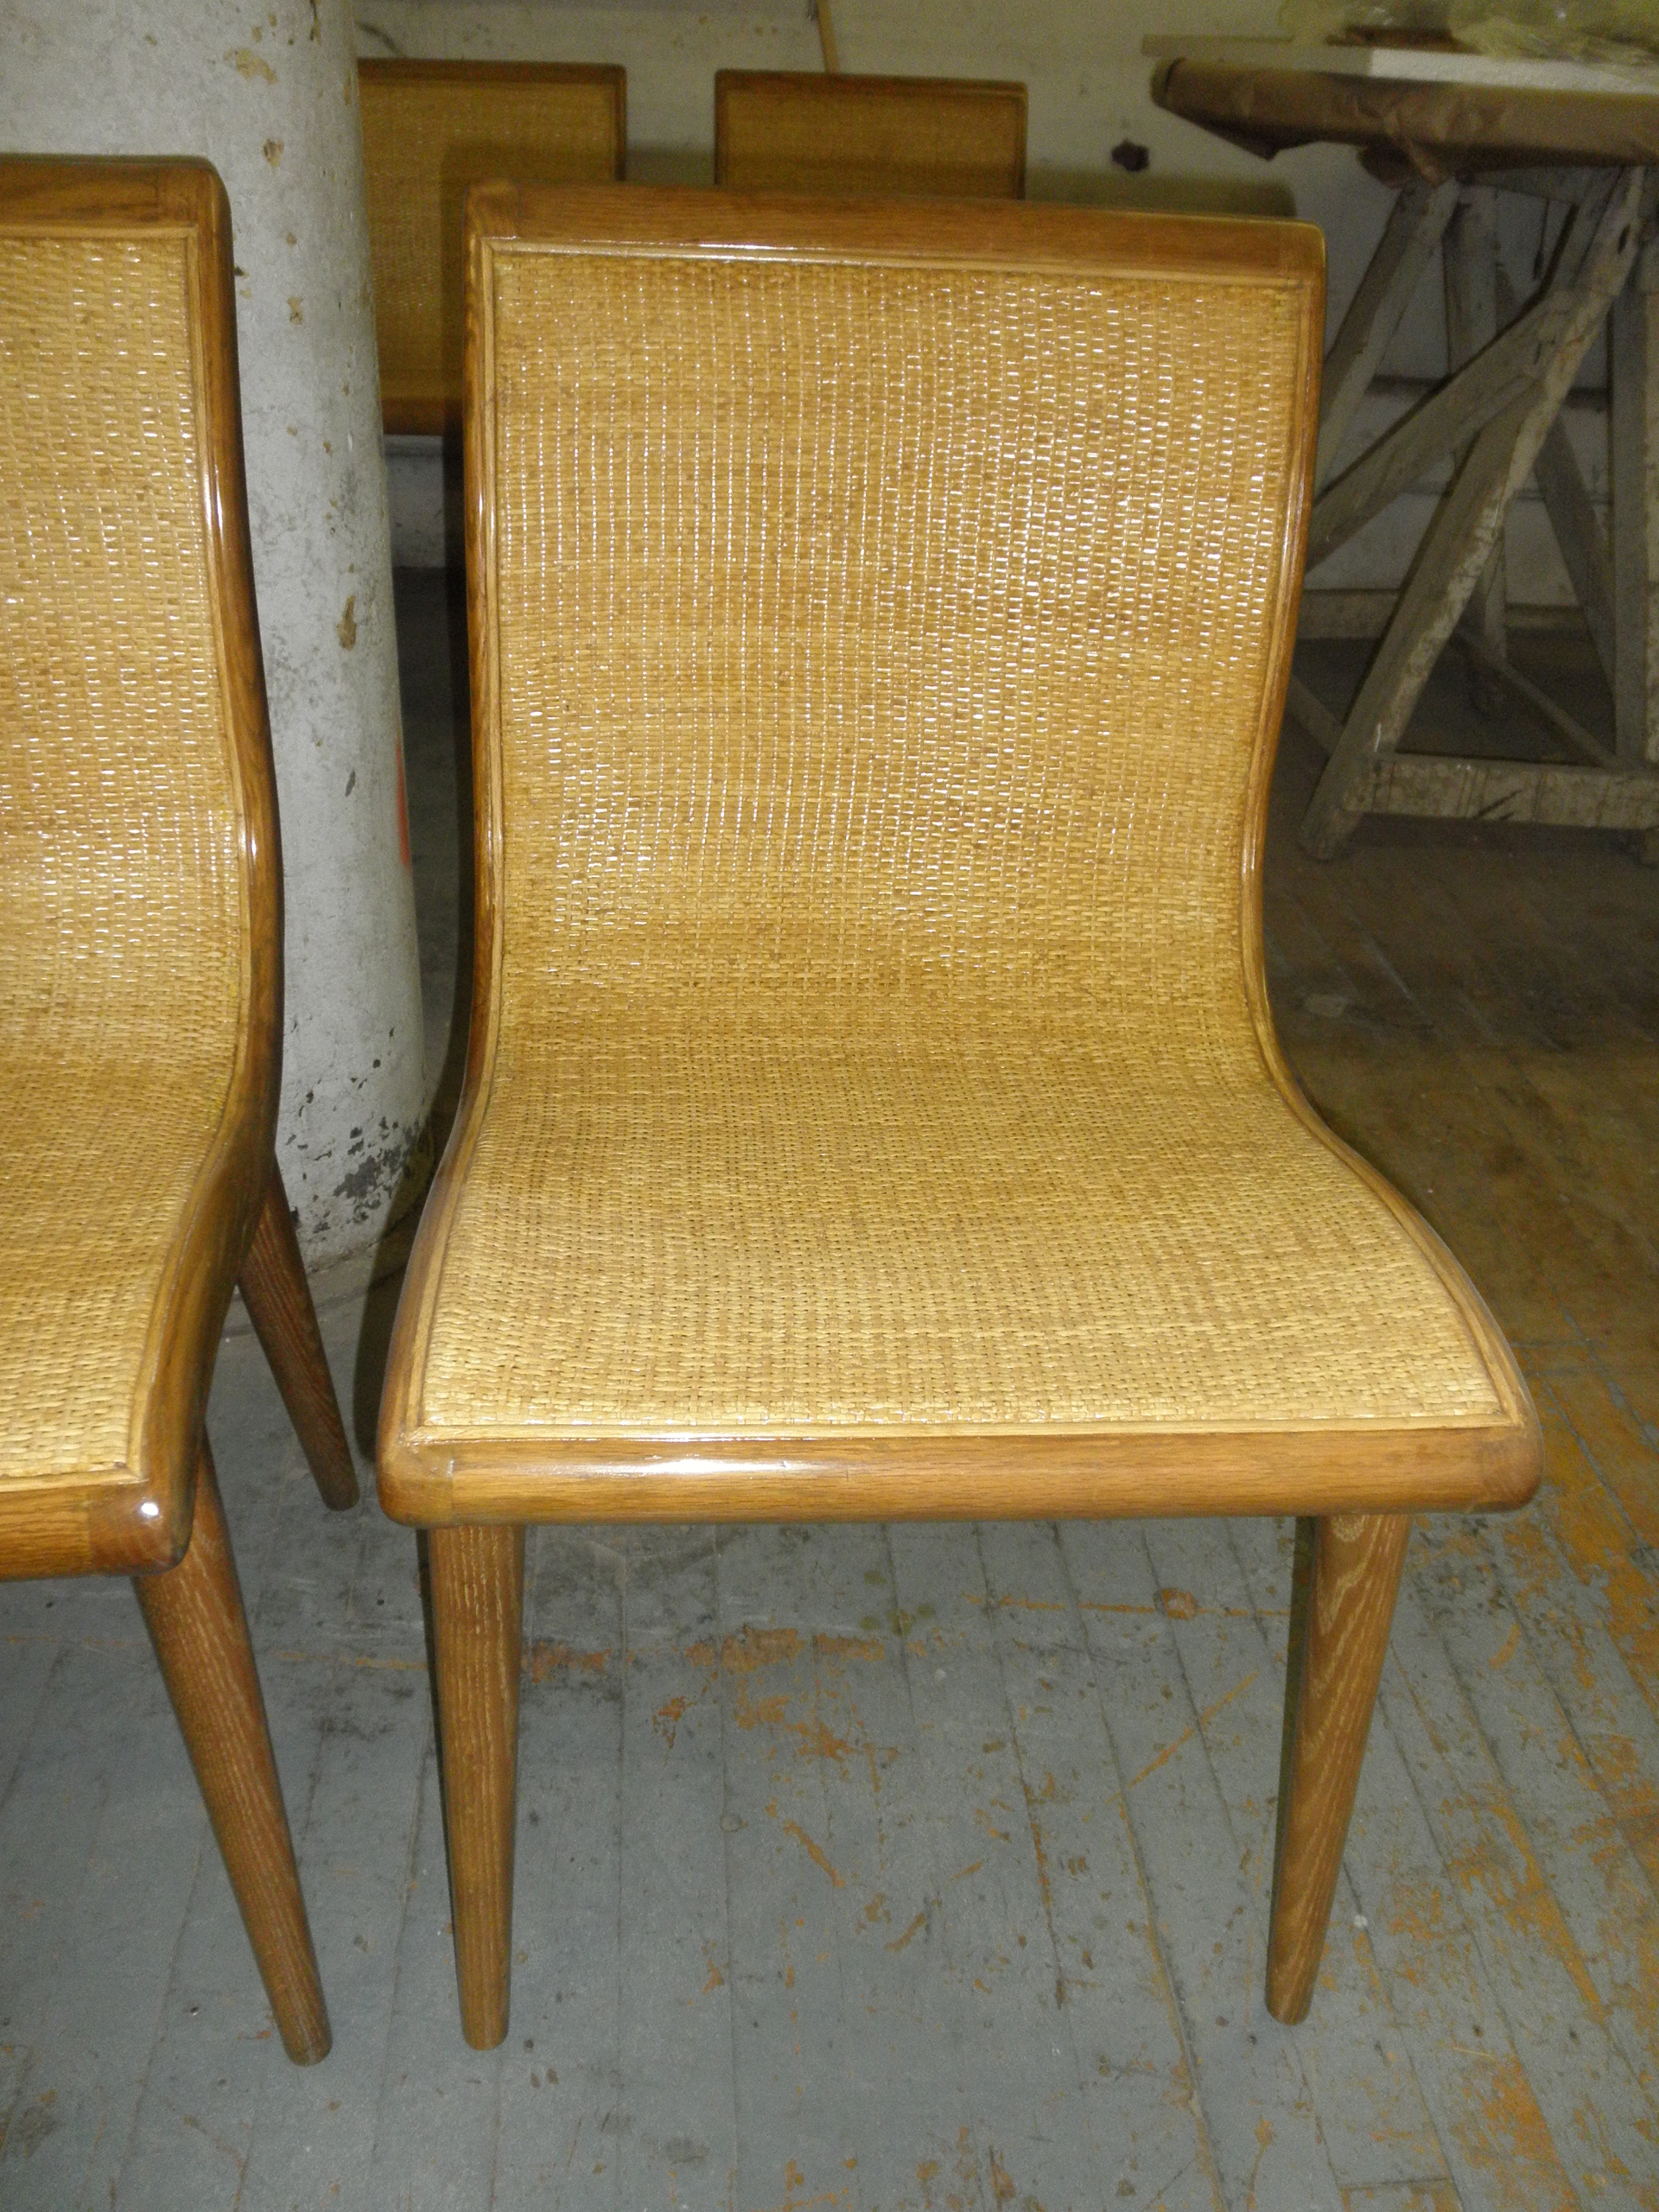 Clearfield Chairs AFTER